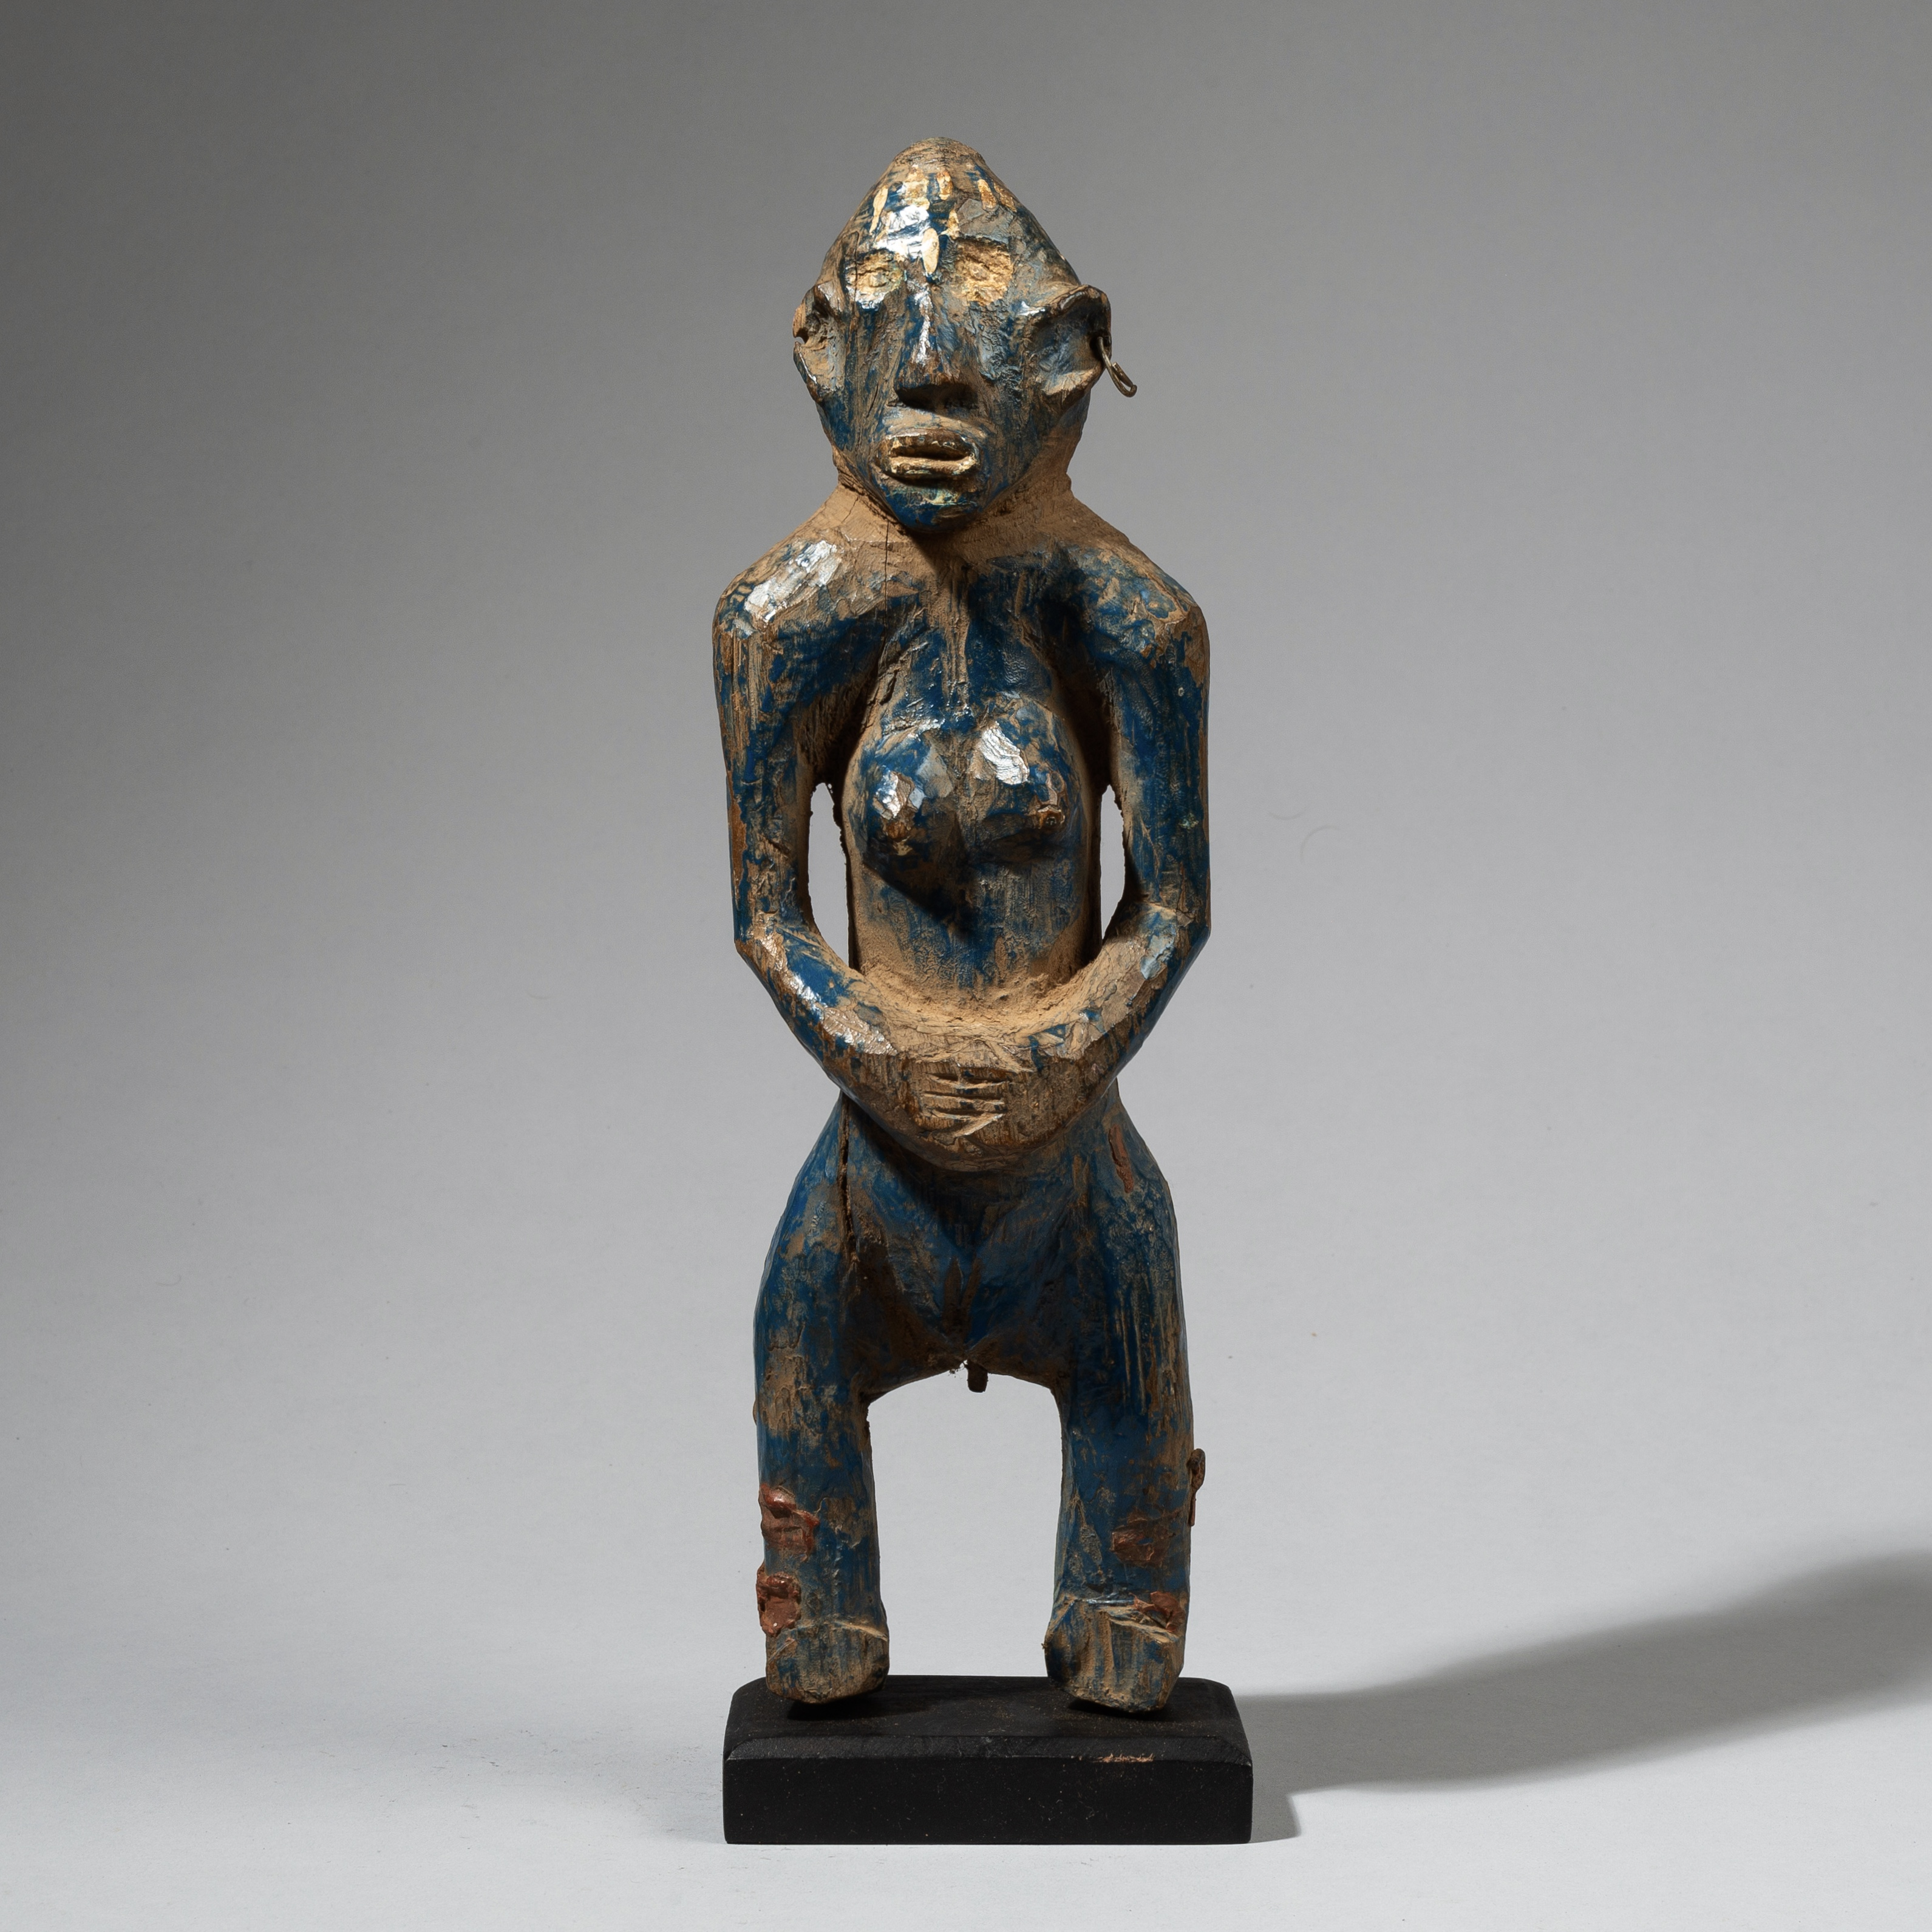 A TALL BLUE SENOUFO ALTAR FIGURE FROM THE IVORY COAST W. AFRICA ( No 4440 )